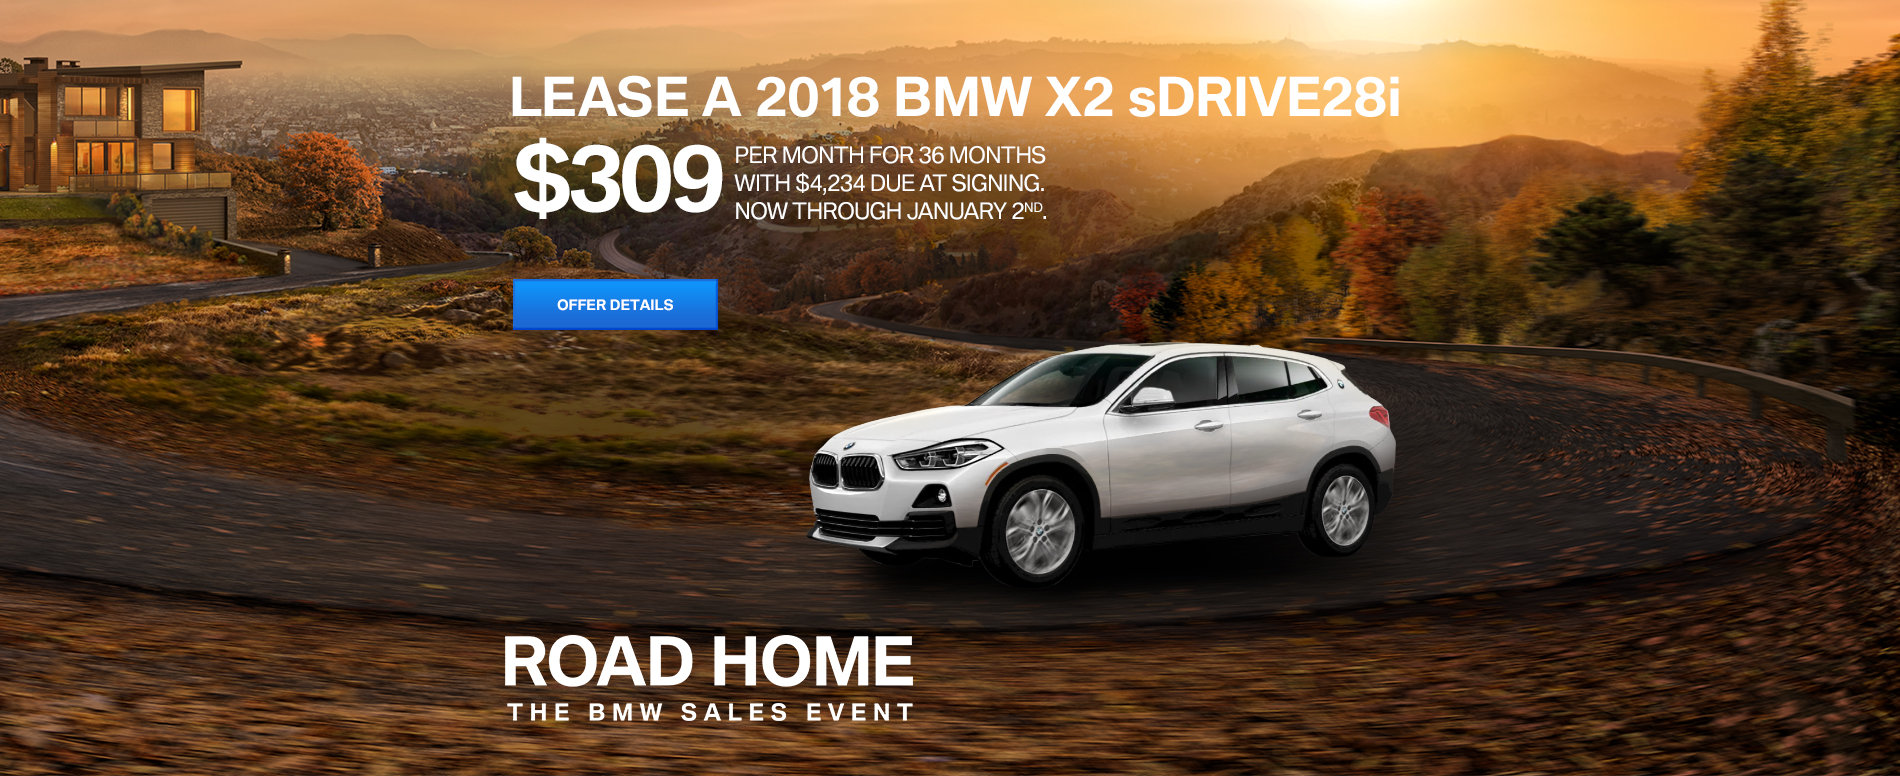 LEASE A 2018 BMW X2 sDRIVE28i FOR $339/MONTH FOR 36 MONTHS  WITH